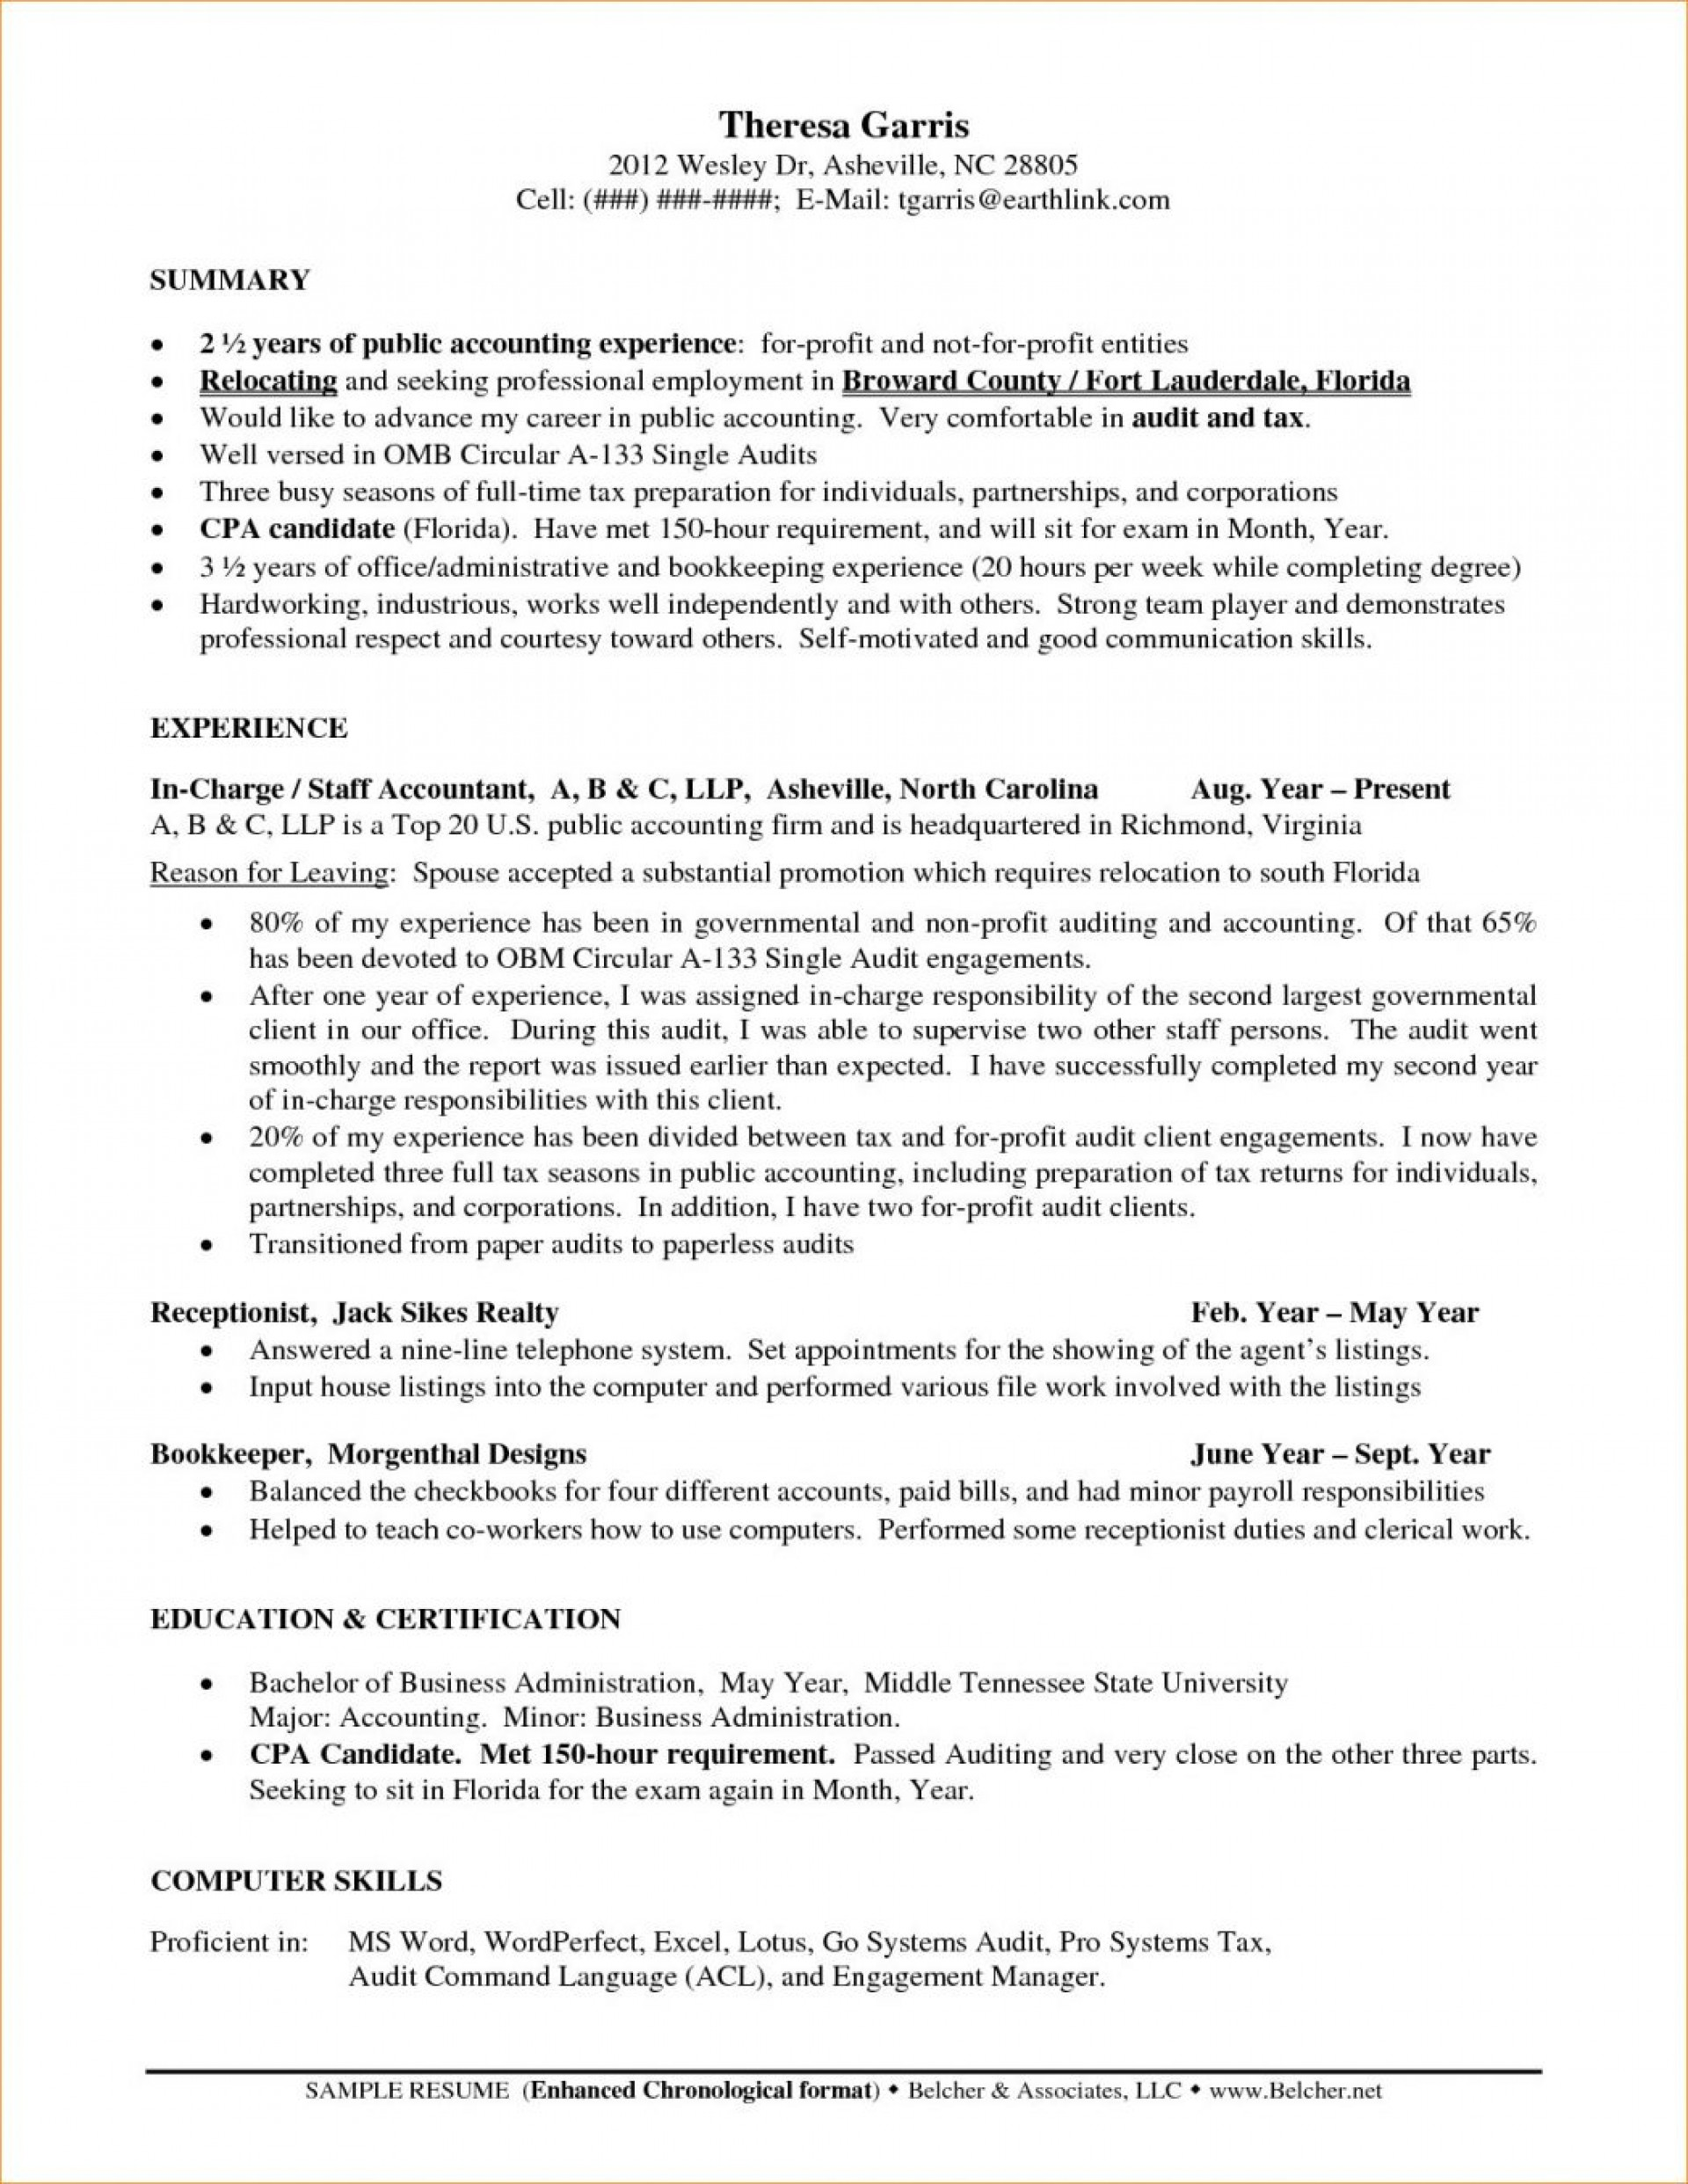 024 Essay Example Best Solutions Of Professional Mba Reflective Help Mri Tech Writing On Teaching Sample Cover Grea Leadership Introduction Using Gibbs Model In Third Person Work Experience Beautiful Examples English Pdf For Middle School Class 1920